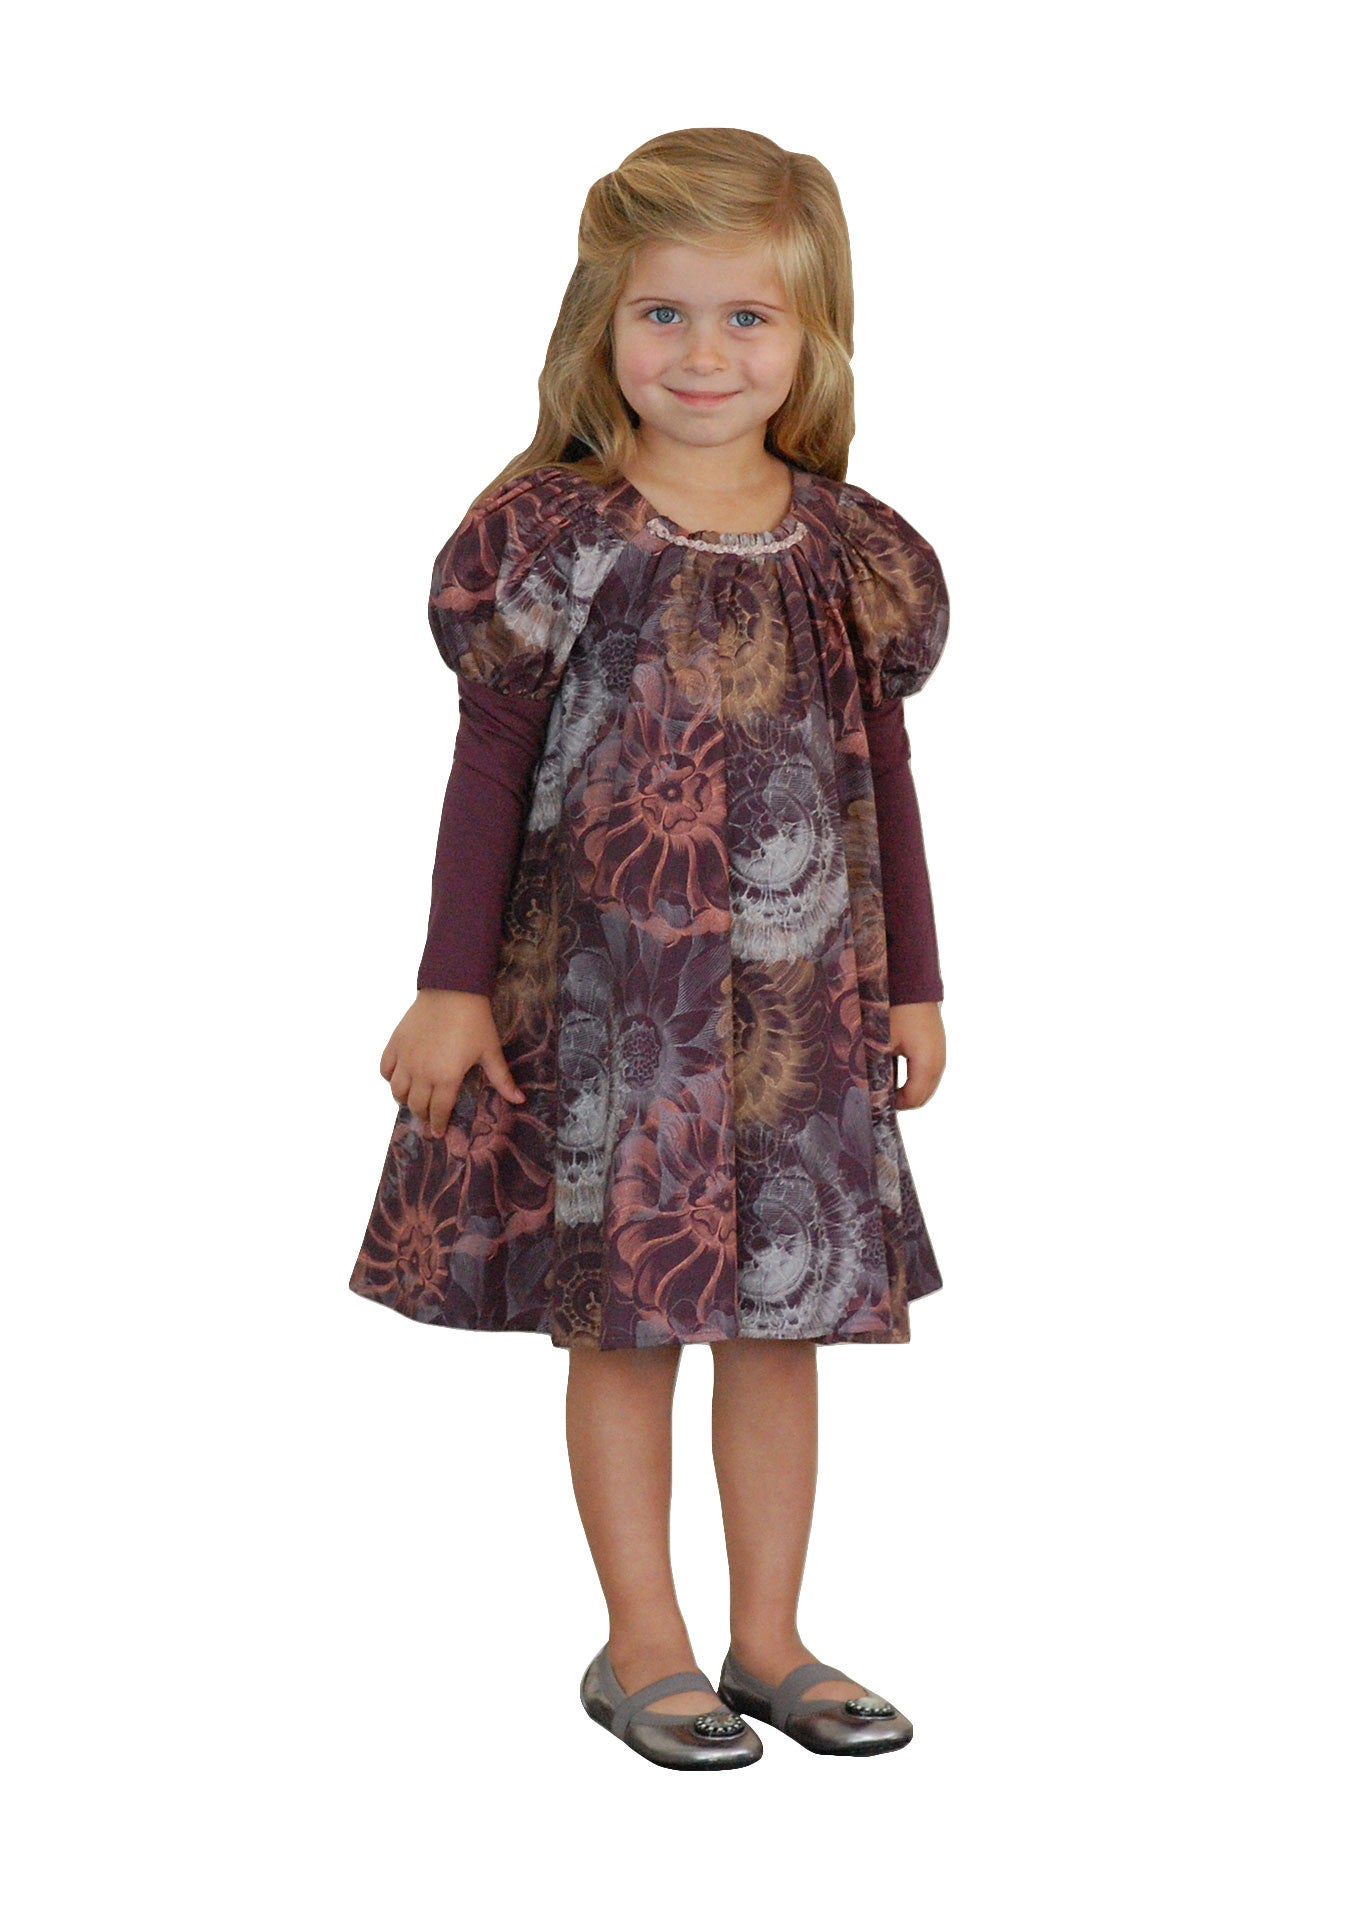 Girl party dress - Twirling girl Dress